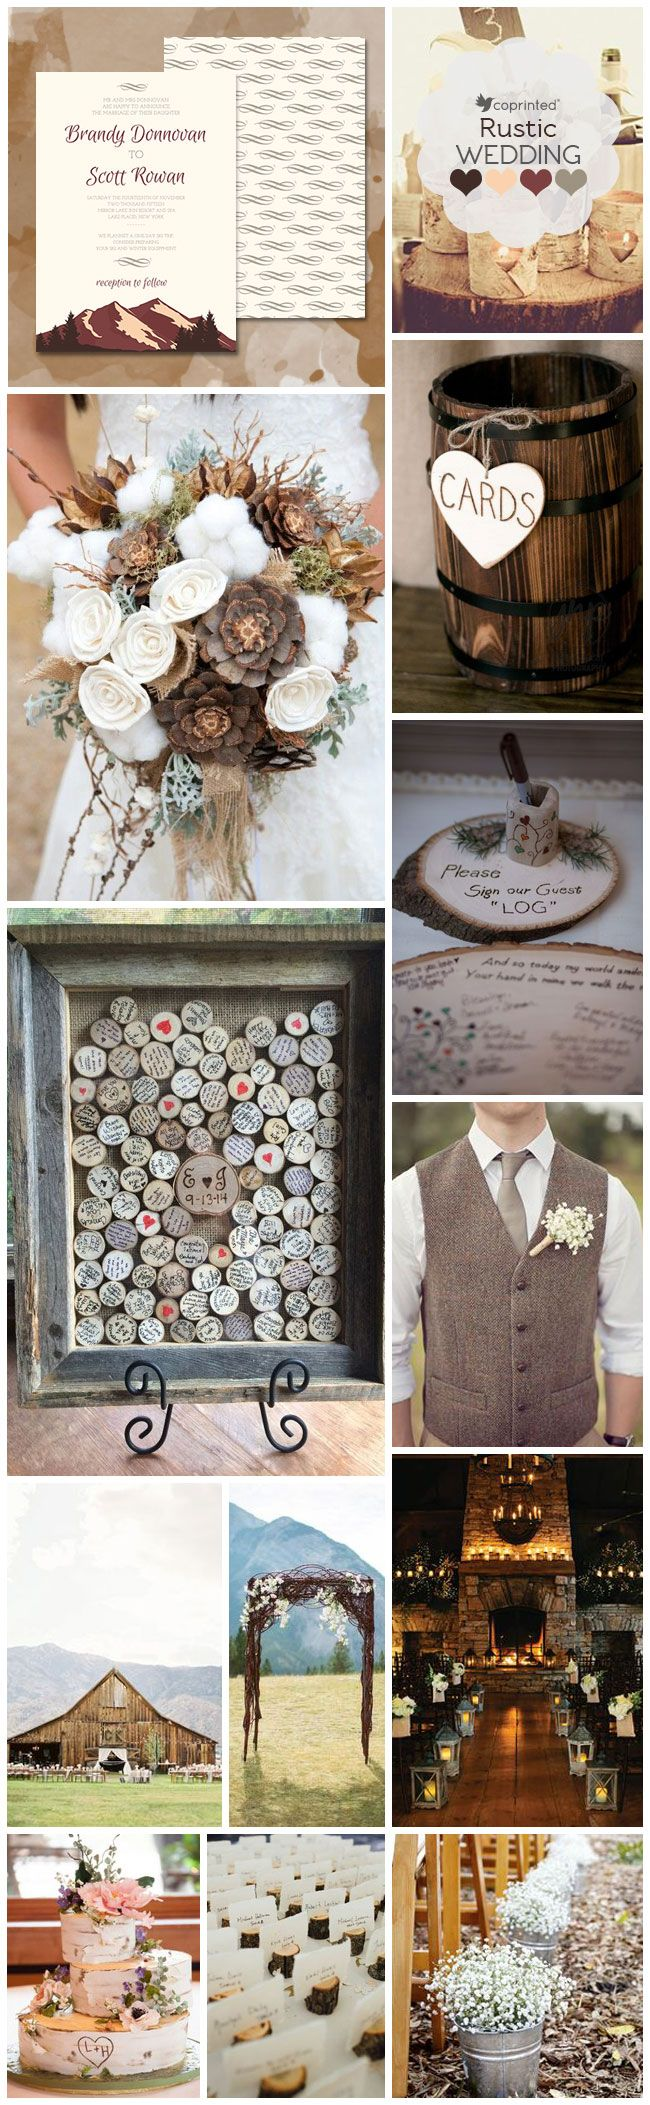 Mountain wedding invitations inspiration board with a rustic theme